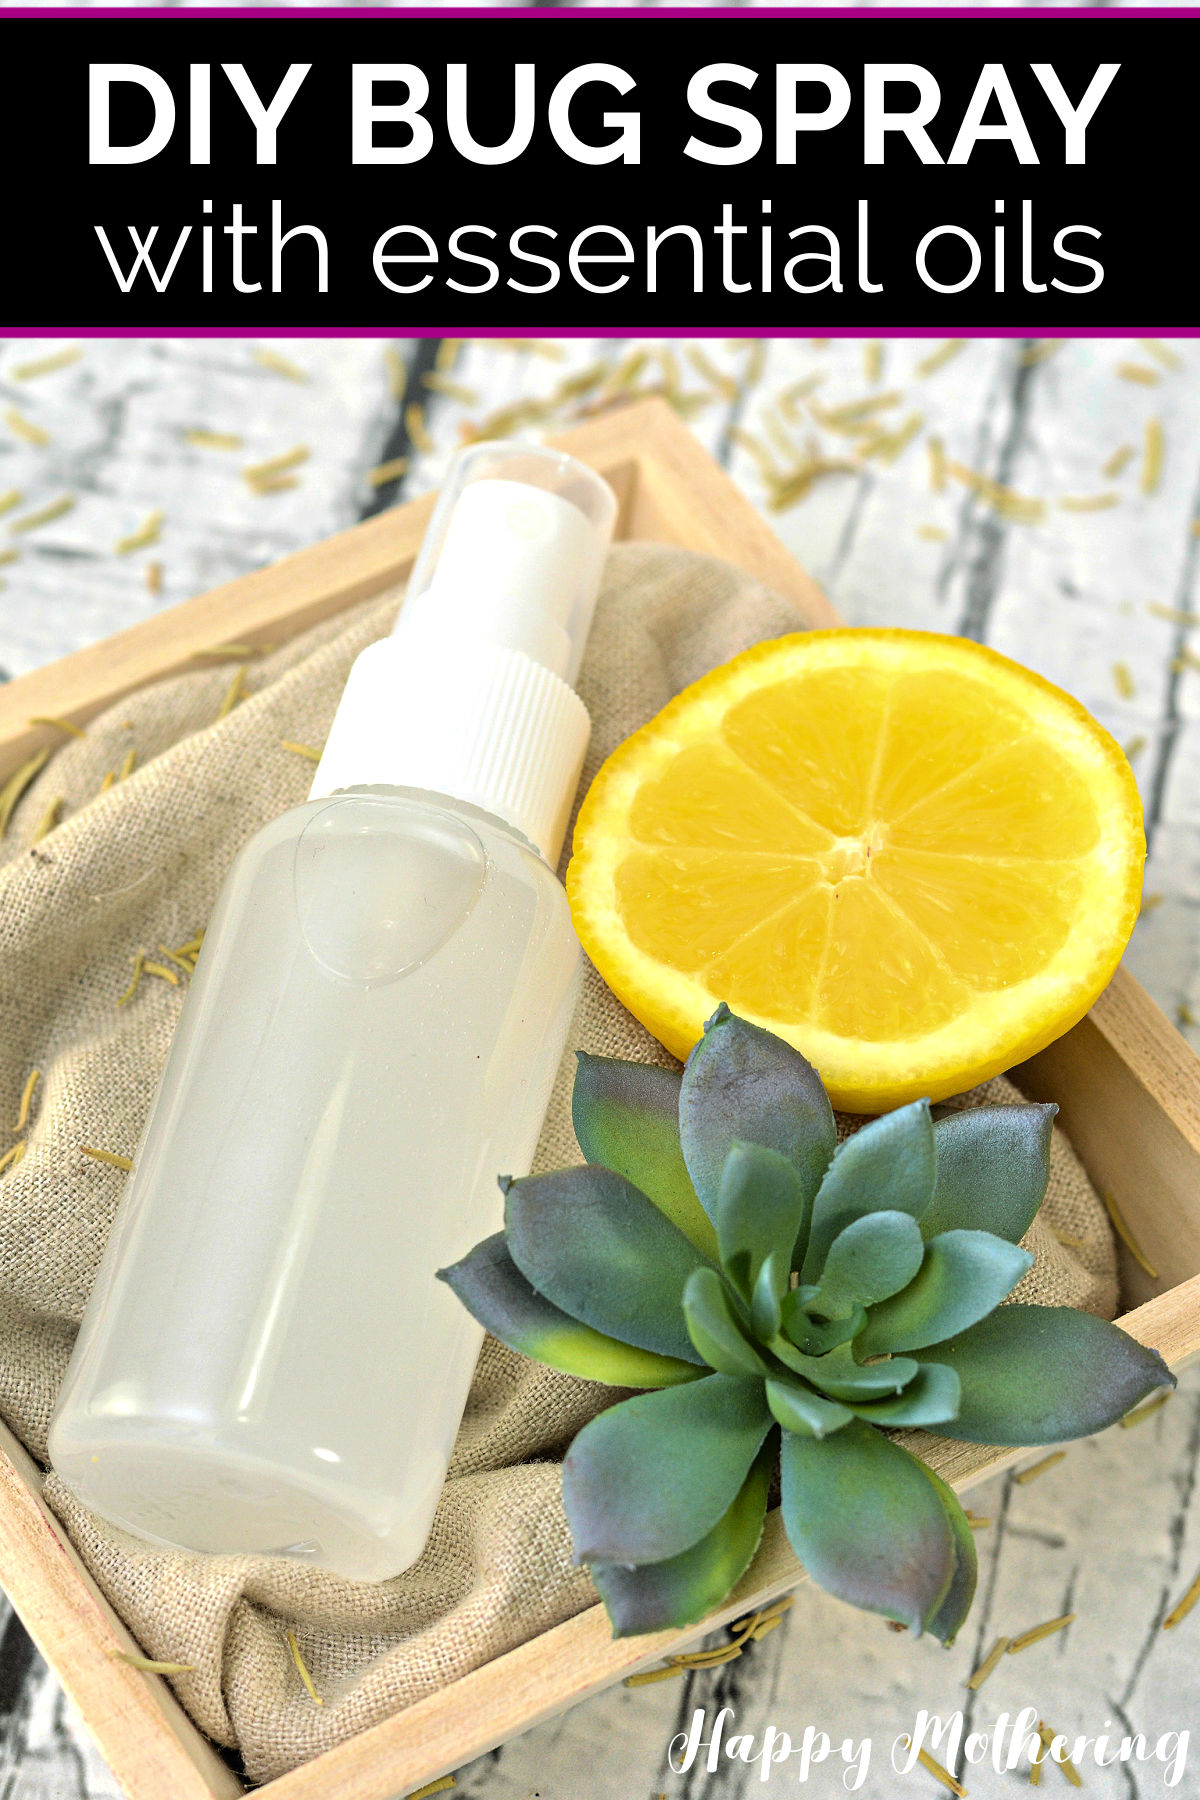 Spray bottle of homemade essential oil bug spray in pretty wood crate with lemon slice and green succulent plant